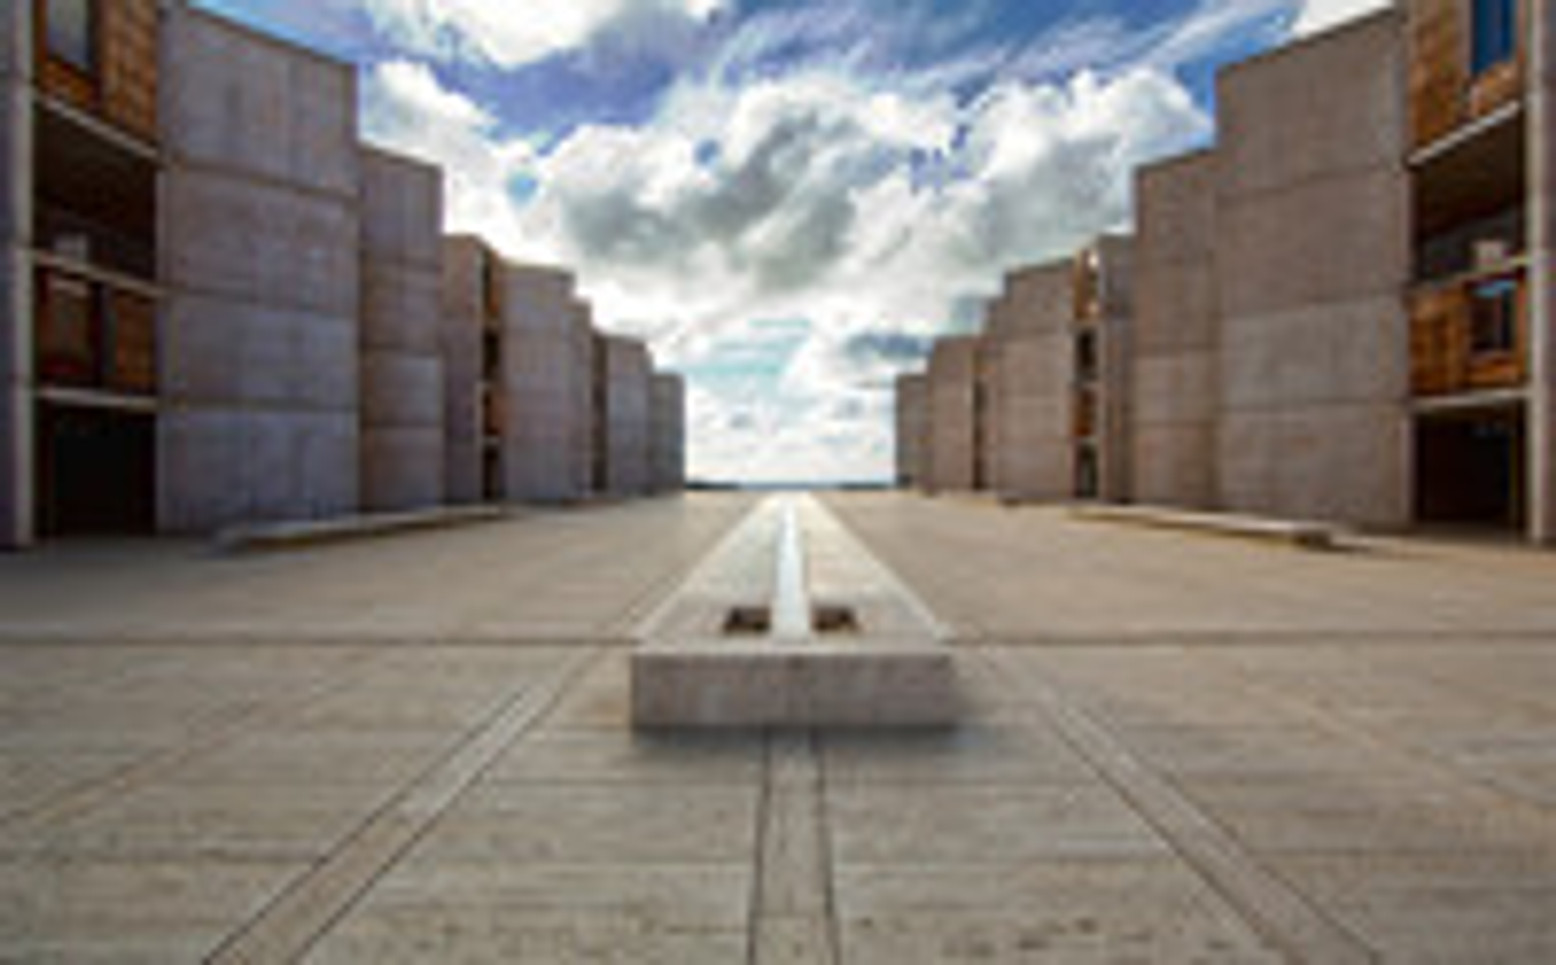 Spotlight On: Louis Kahn, Architect in Light